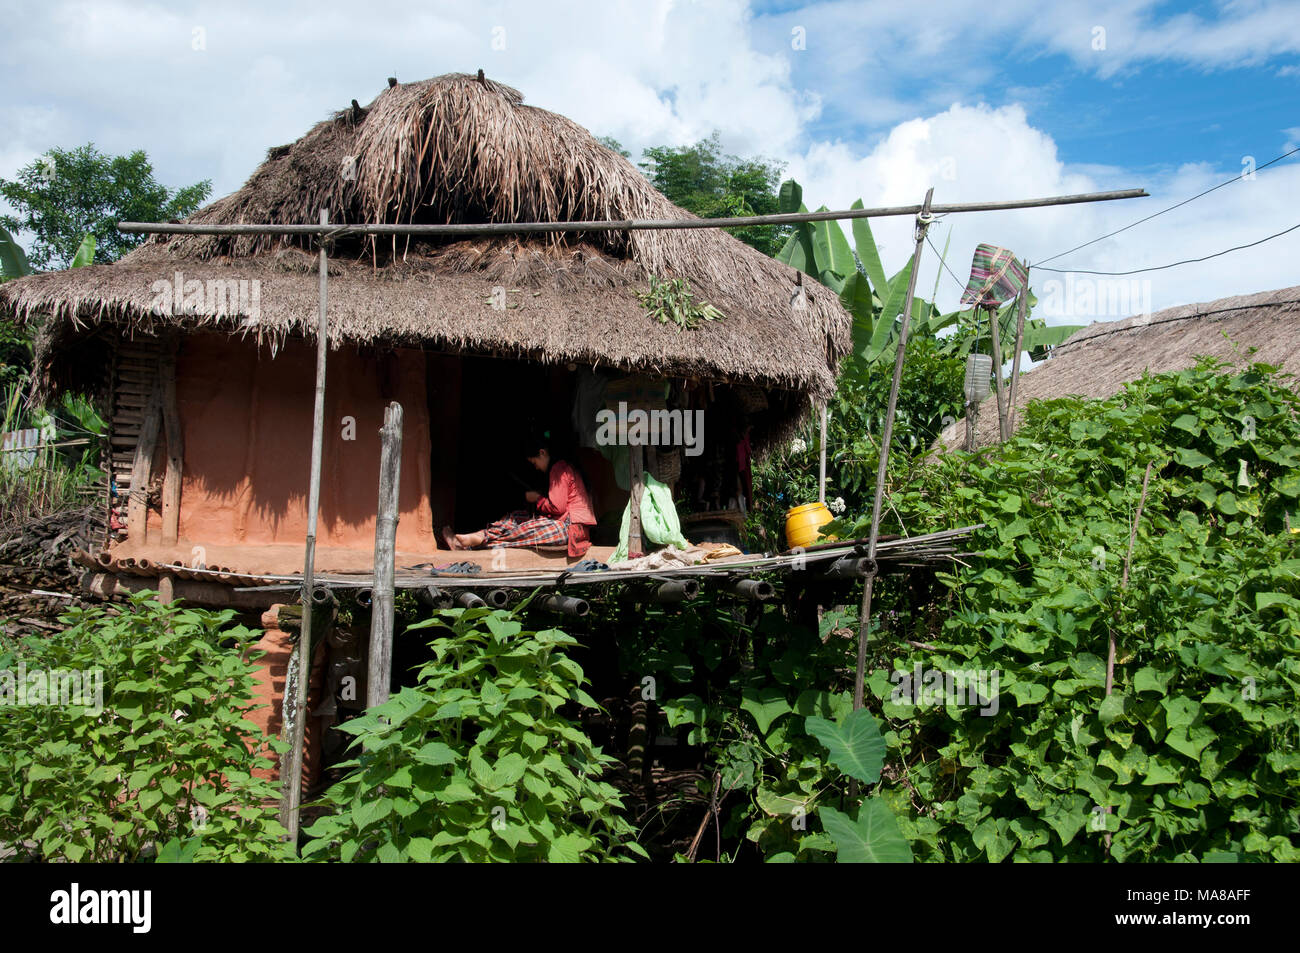 Nepal 2014. Sankhuwasabha District. Women Sitting On The Bamboo Terrace Of  A Traditional House